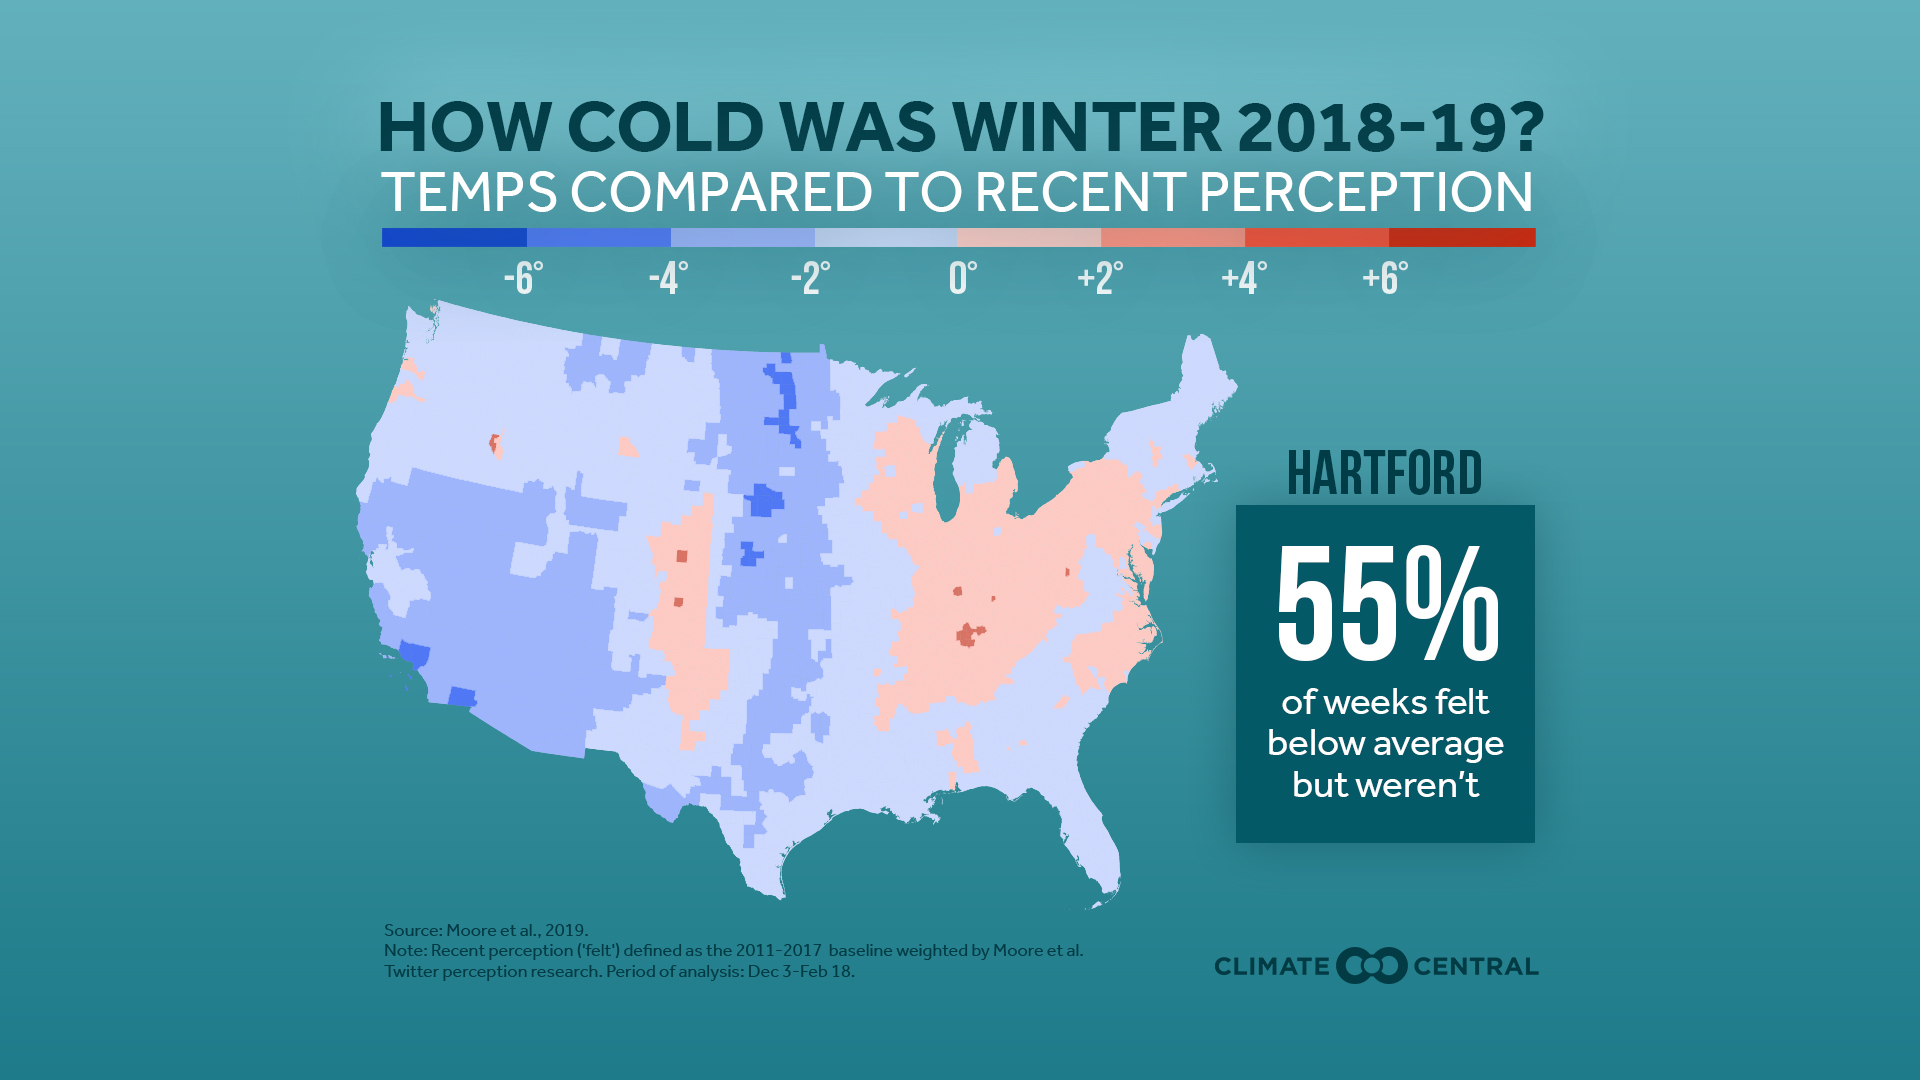 Recent Perception of 2018-19 Winter Temps